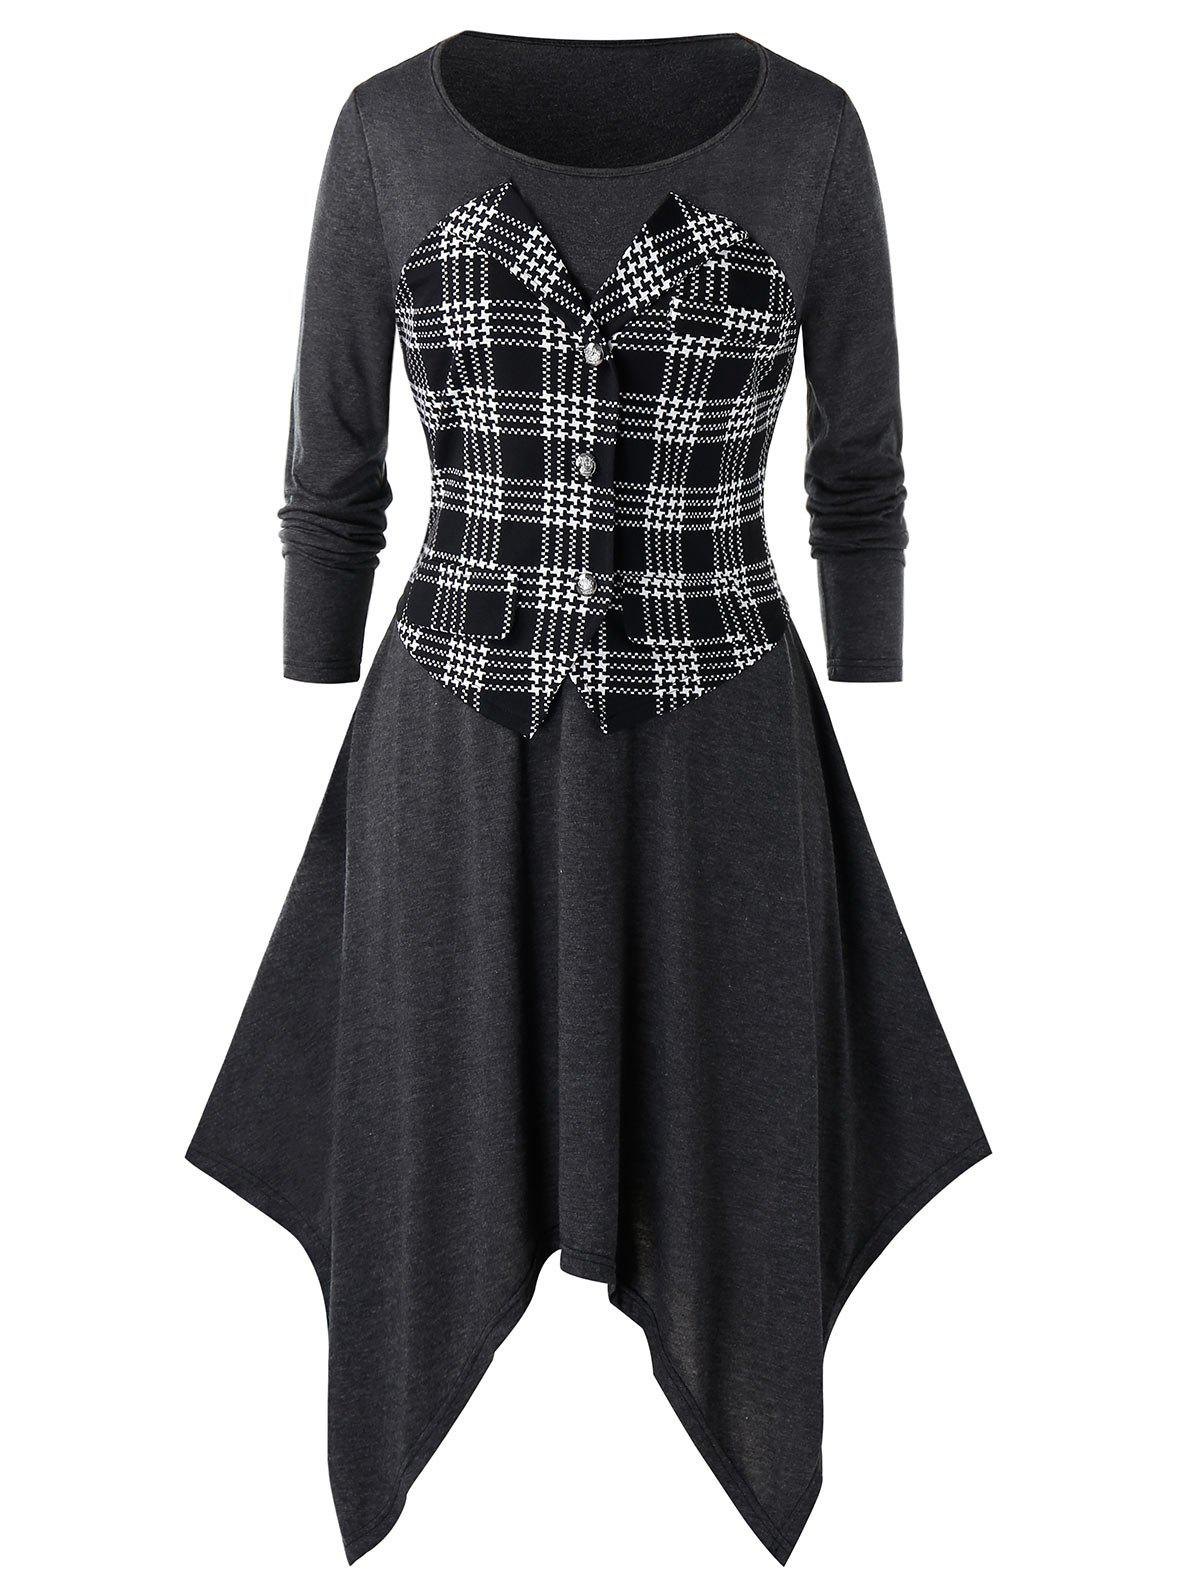 Plus Size Plaid Asymmetrical Long Sleeve Handkerchief Dress - GRAY 5X